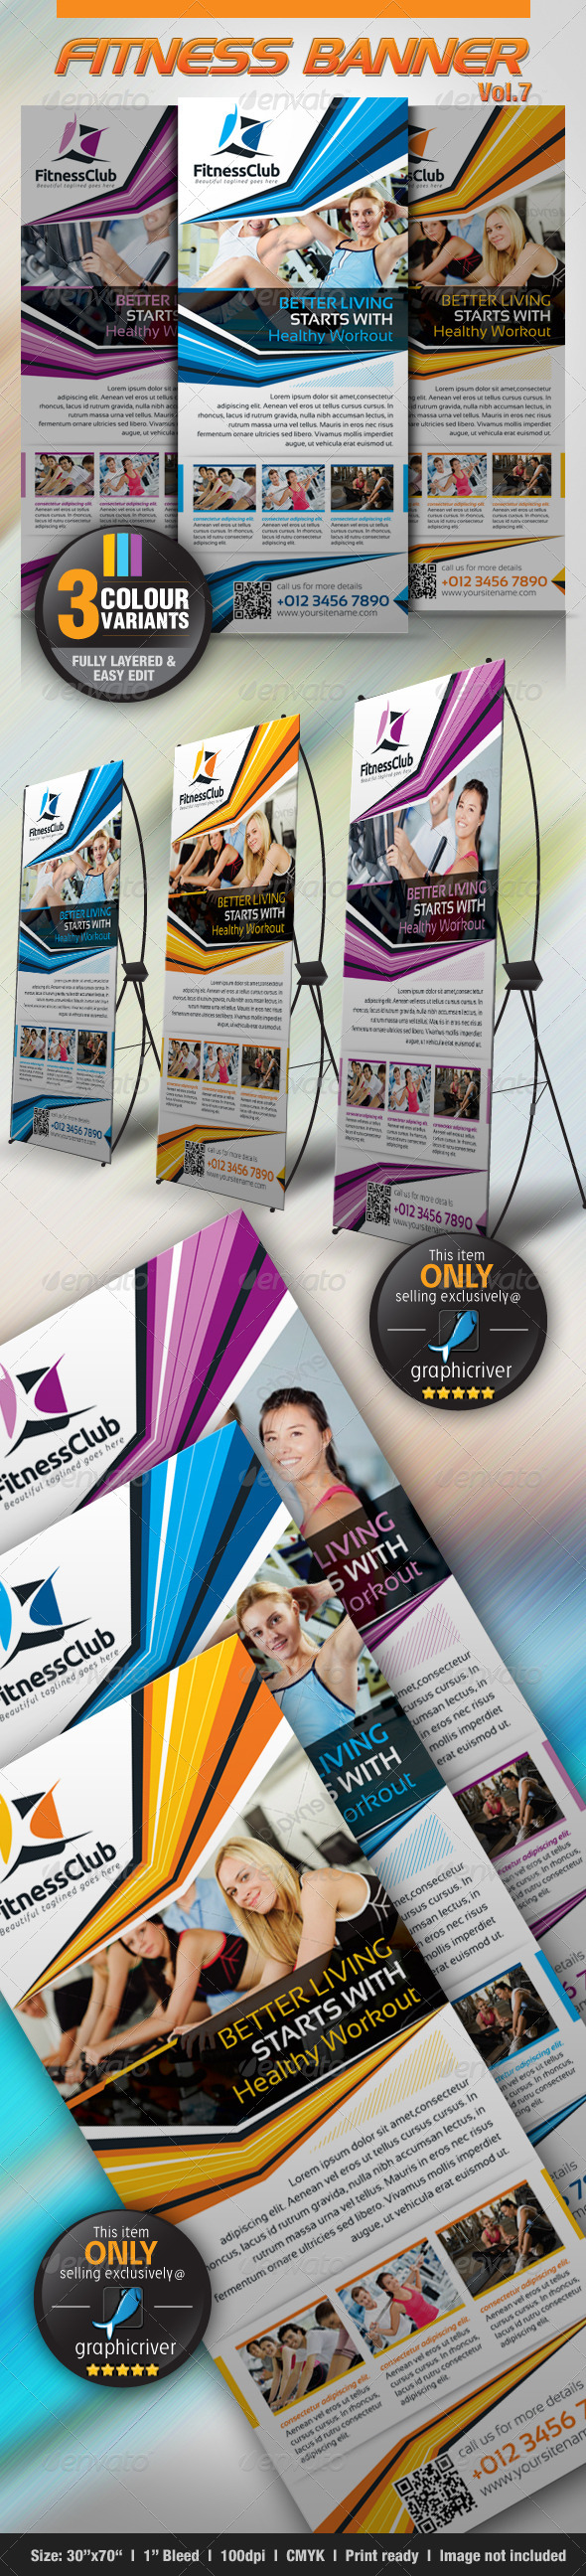 Fitness Banner Vol.7 - Signage Print Templates